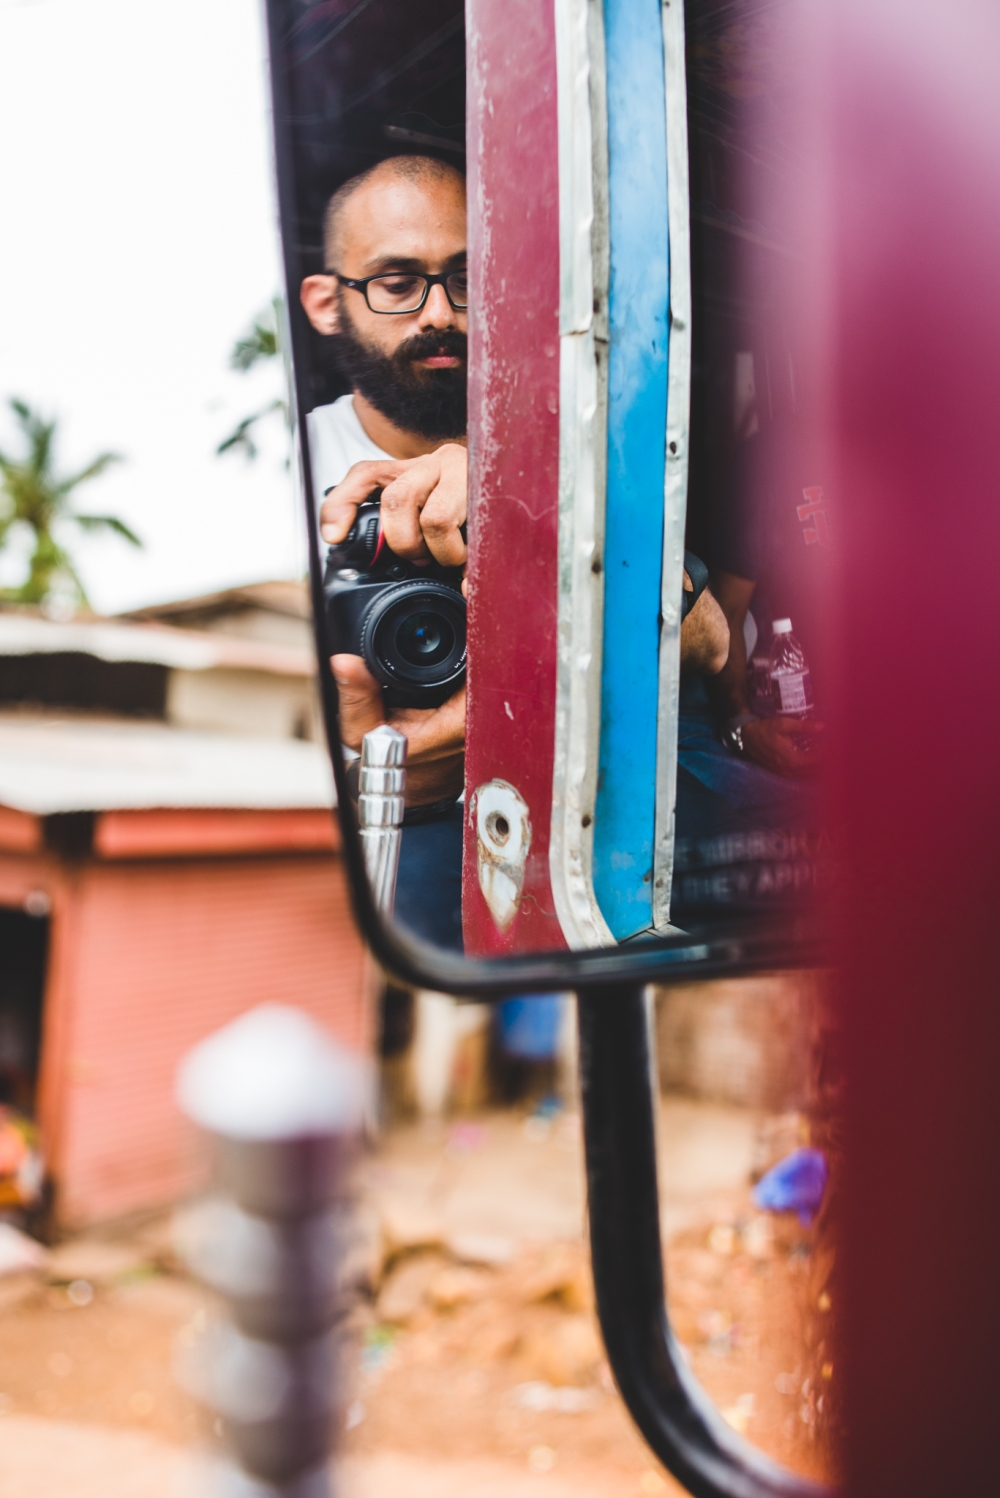 Photographer's self-potrait in the rear-view mirror